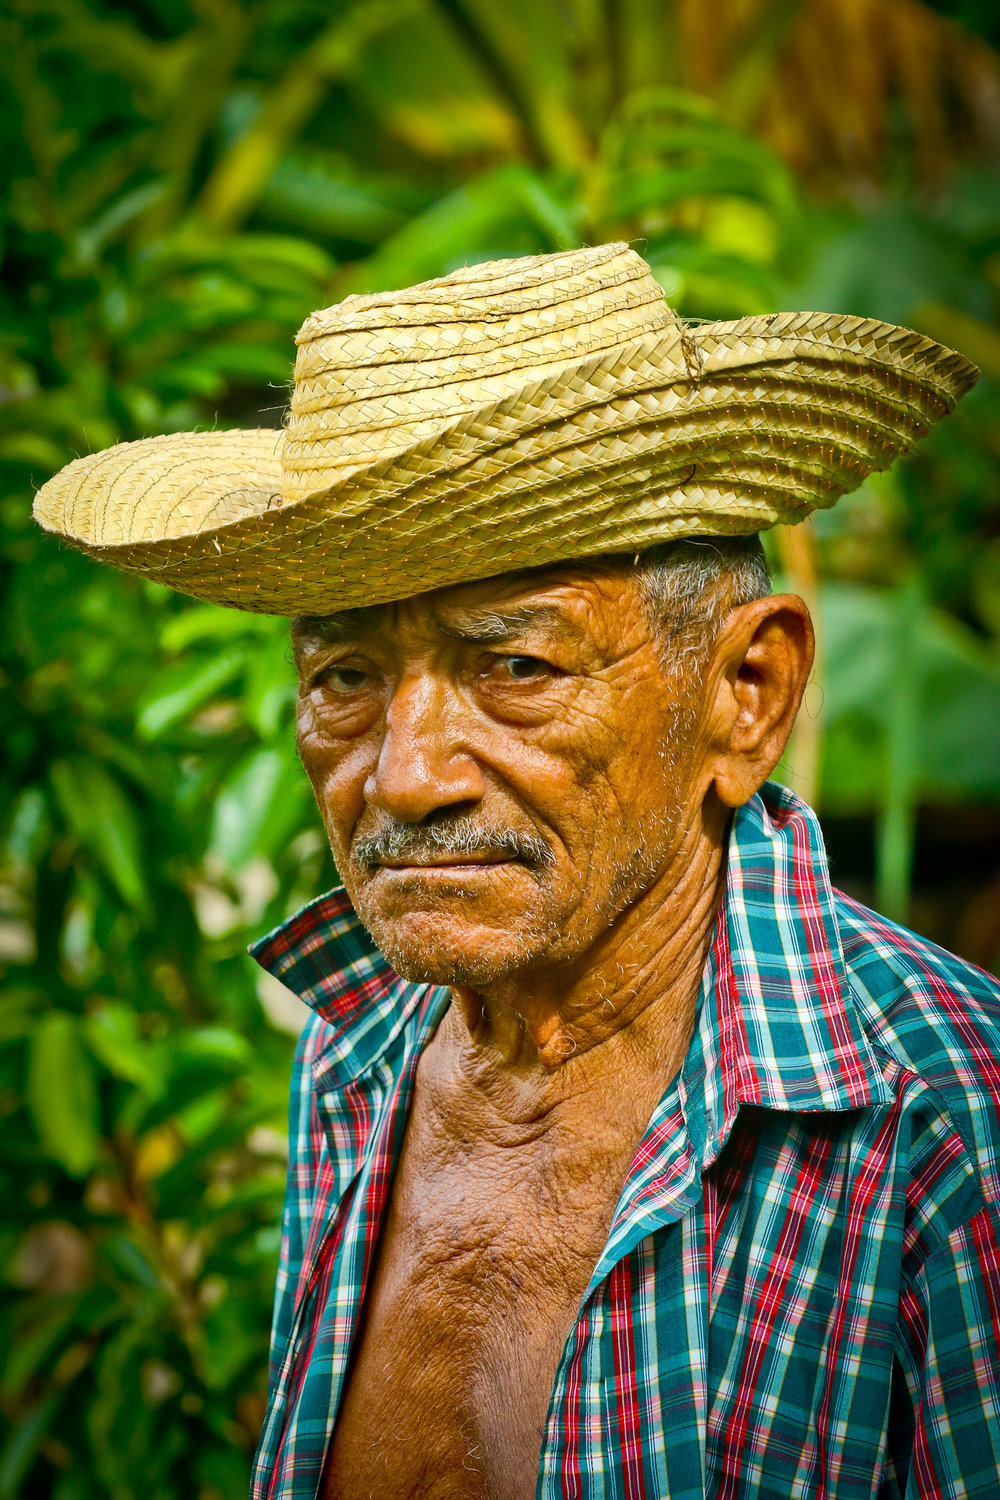 Farmer in Baracoa